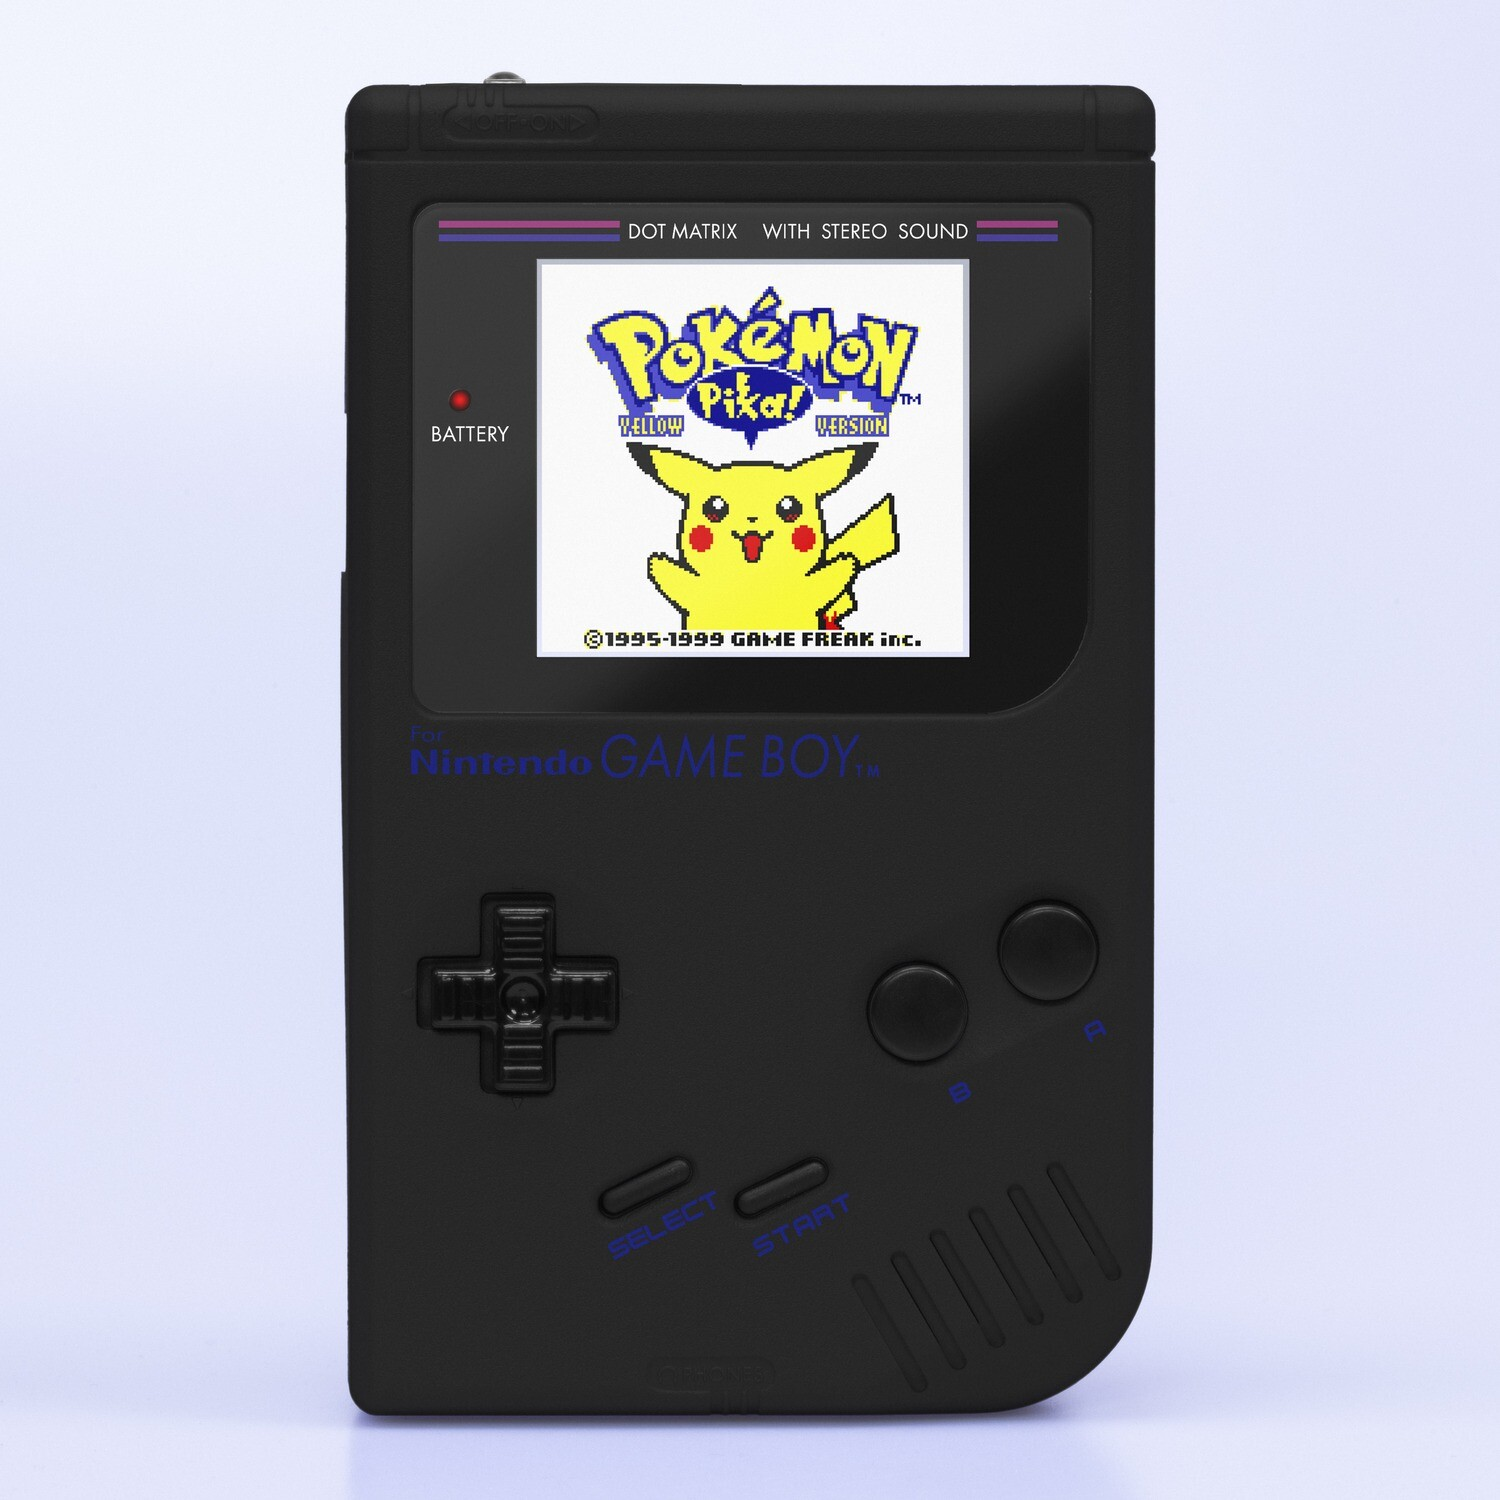 Game Boy Original: Prestige Edition (Matt Black)